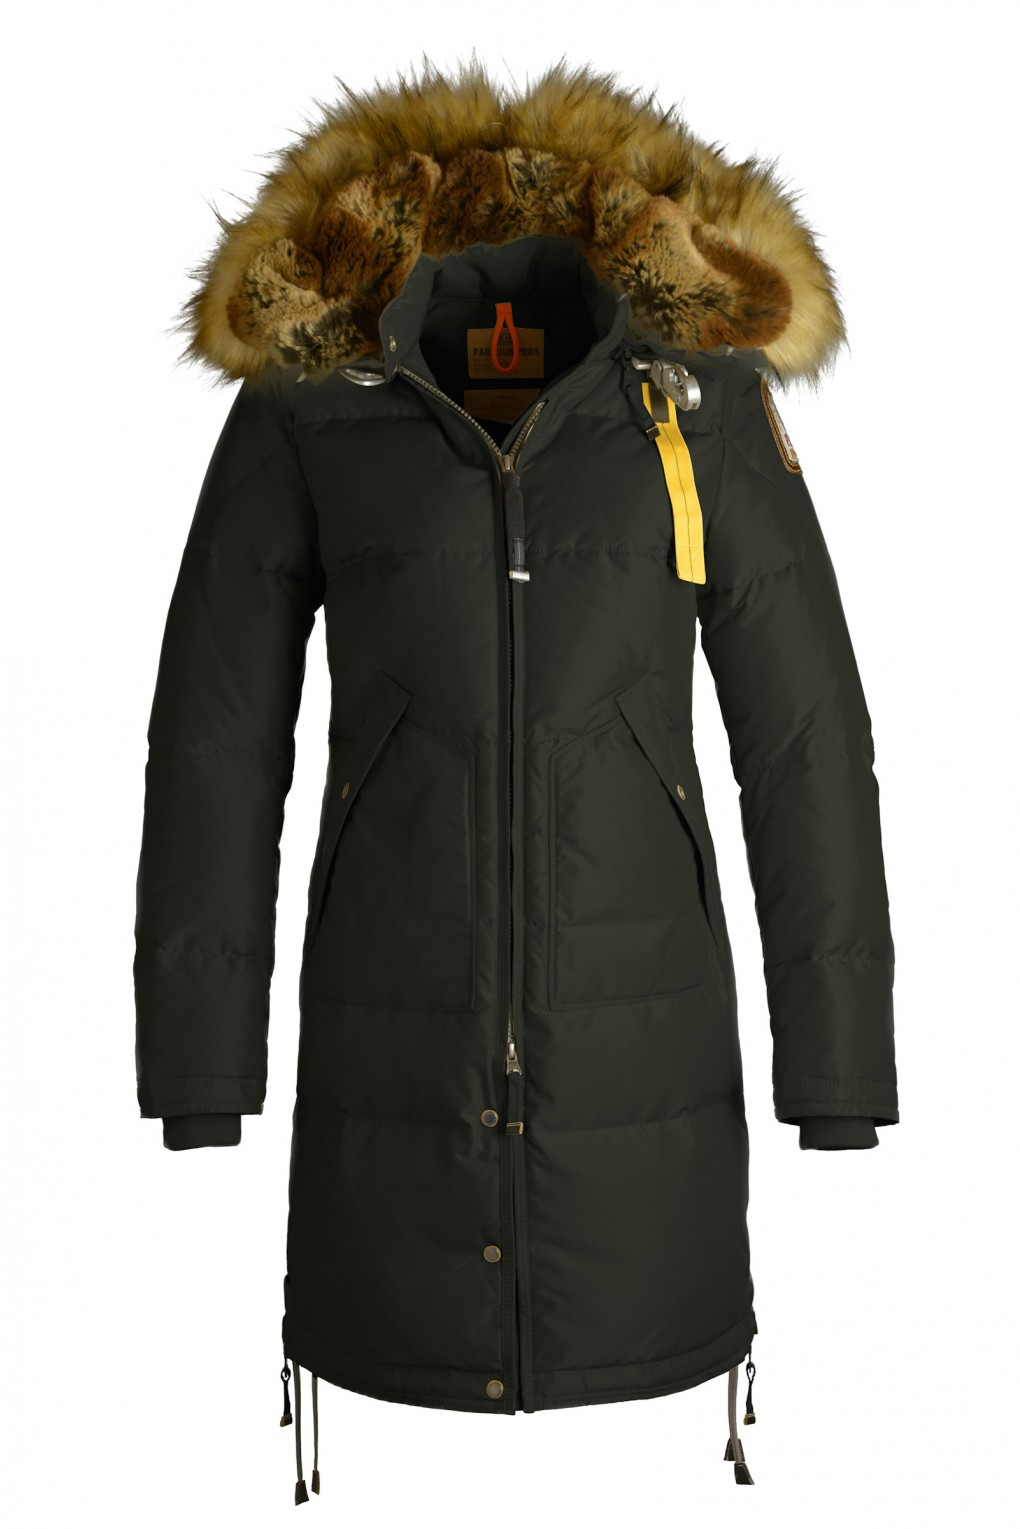 parajumpers LONG BEAR ECO woman outerwear Olive